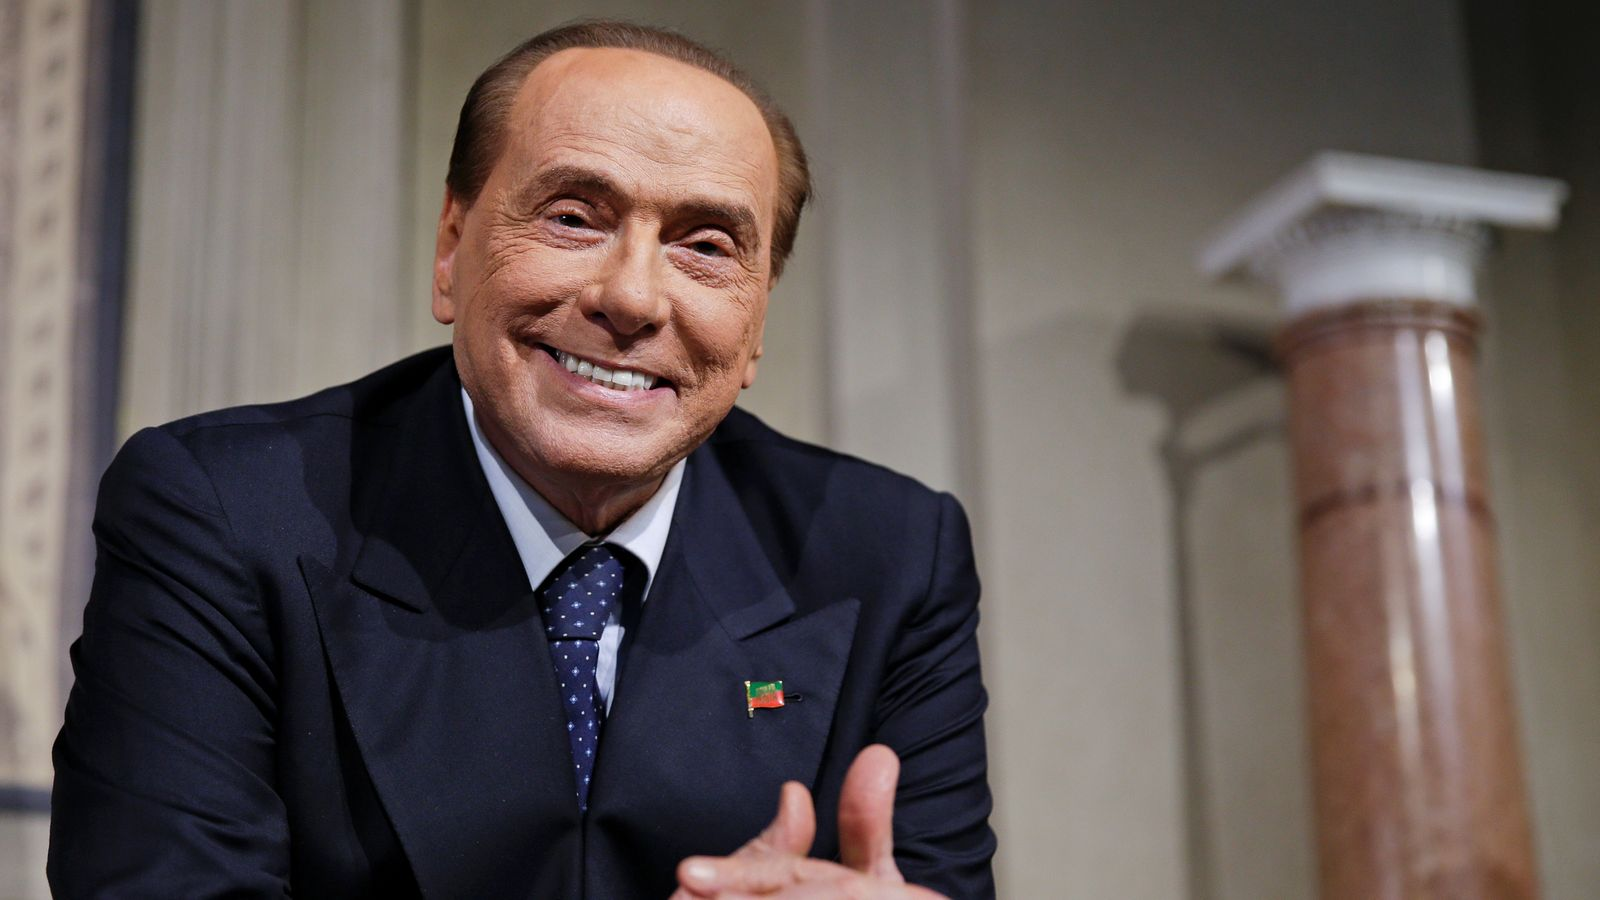 'Europe needs change': Berlusconi running for EU Parliament